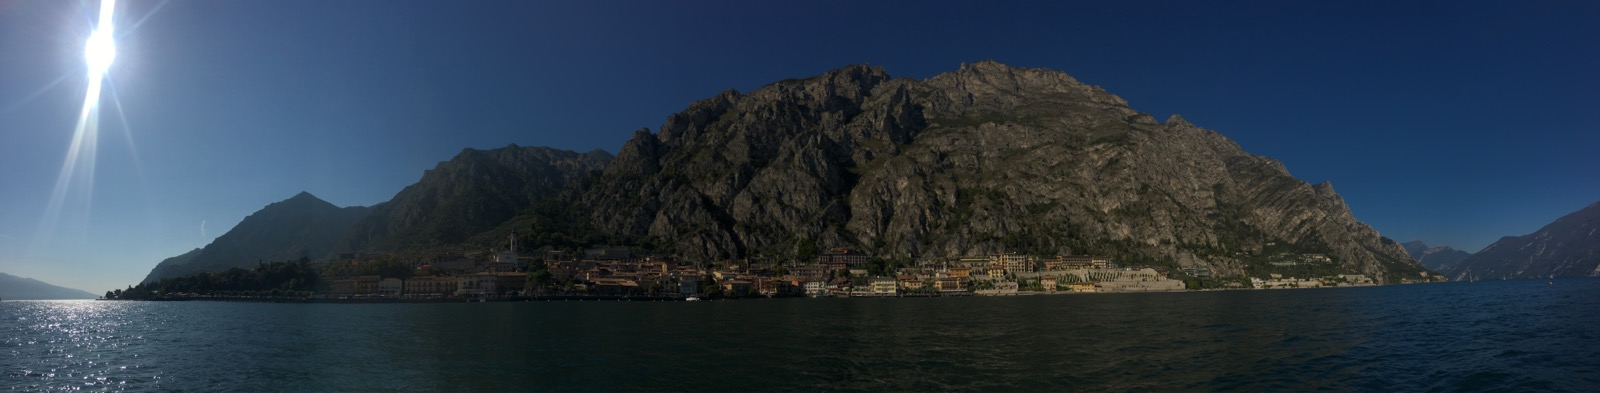 Autumn in Limone